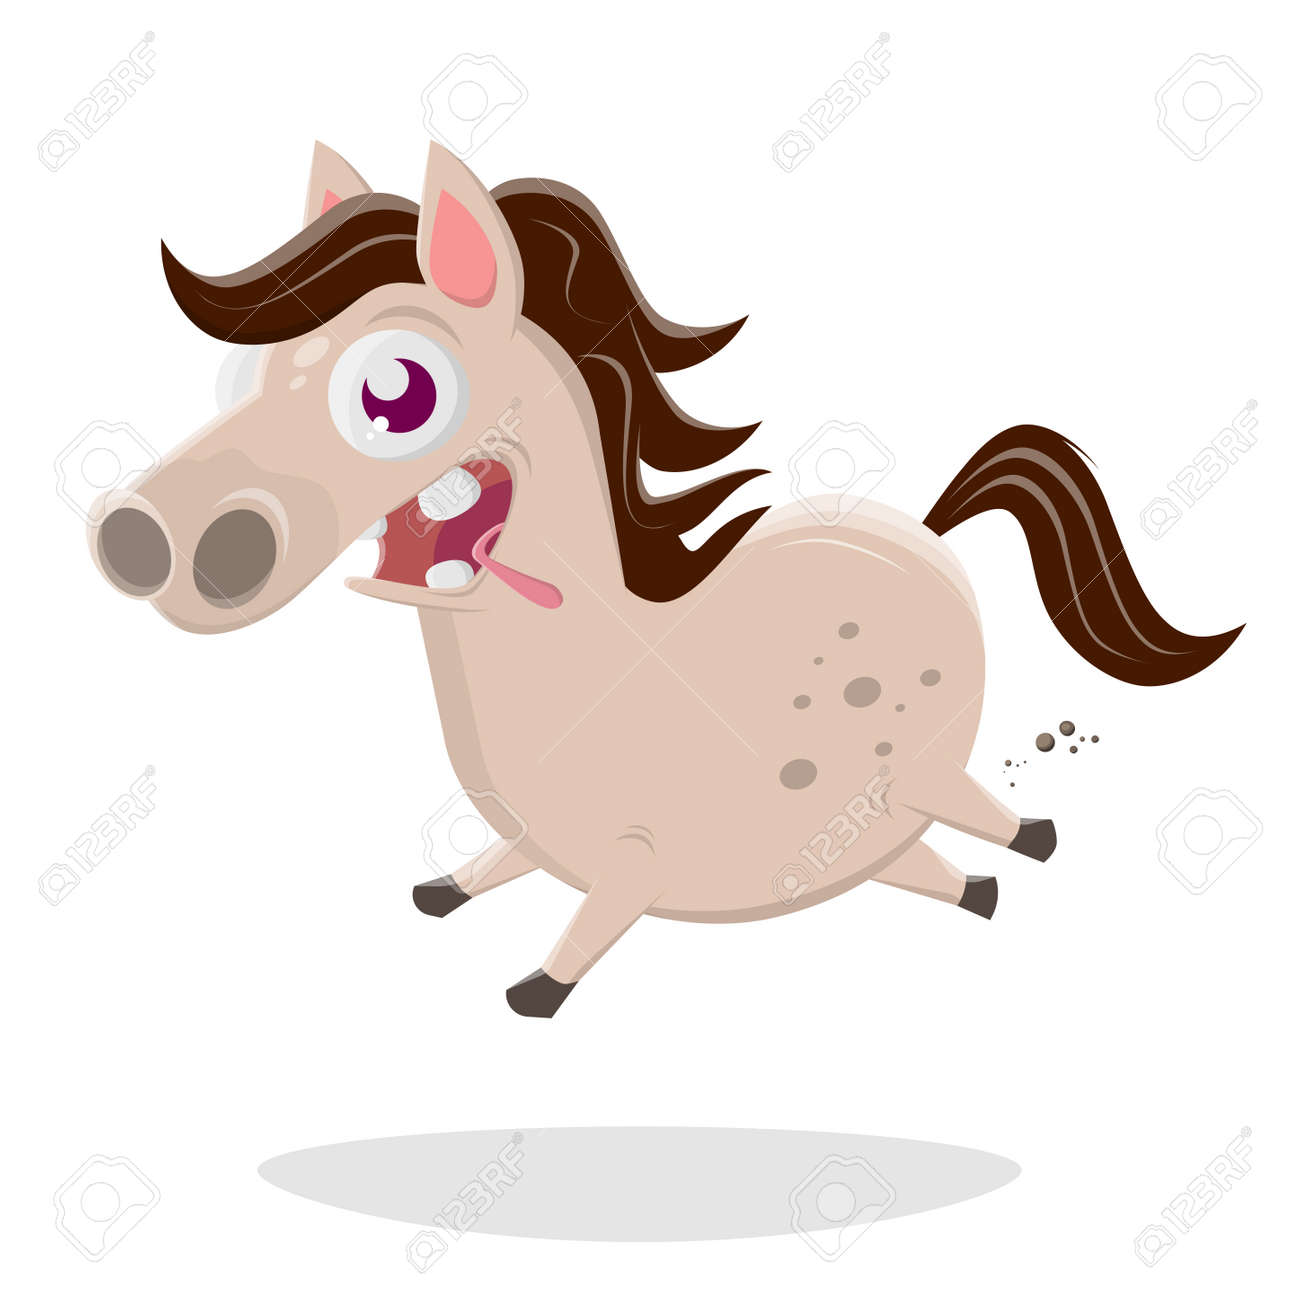 Funny Cartoon Illustration Of A Crazy Horse Royalty Free Cliparts Vectors And Stock Illustration Image 113330334